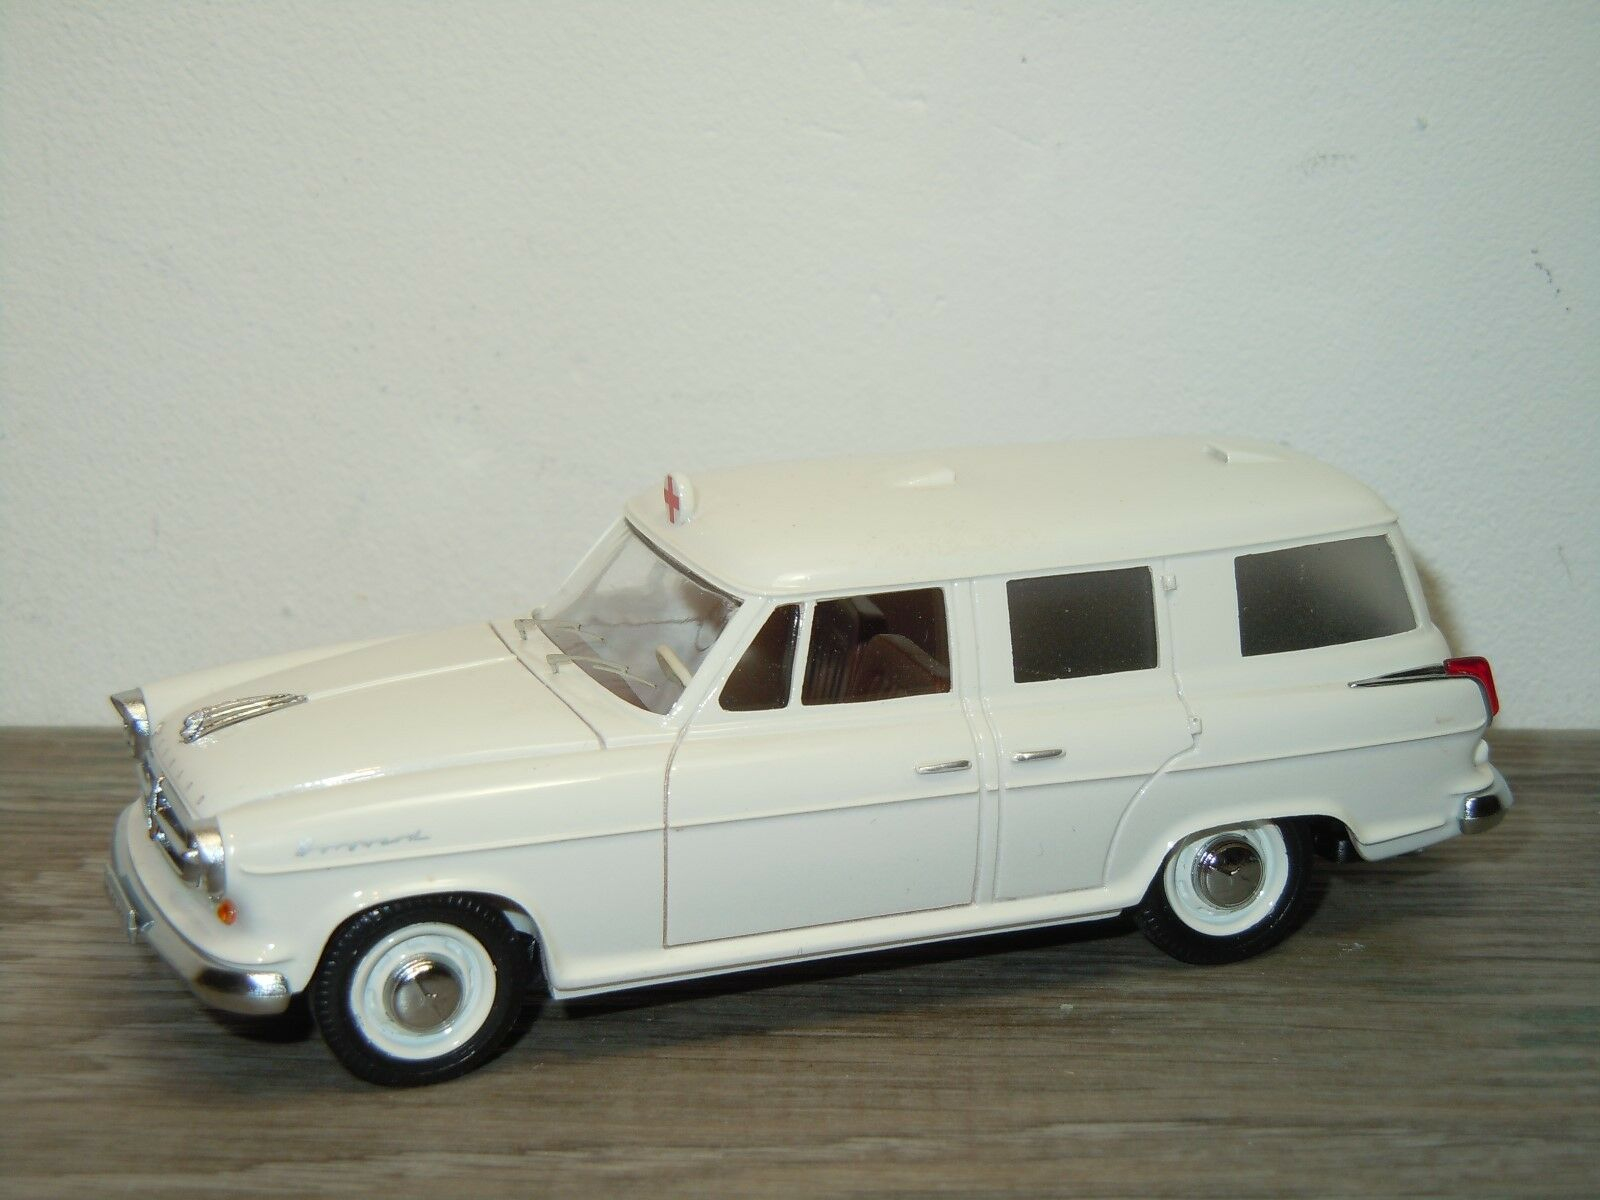 Borgward Isabella  Ambulance - SE Modell France 1 43 34834  jusqu'à 60% de réduction